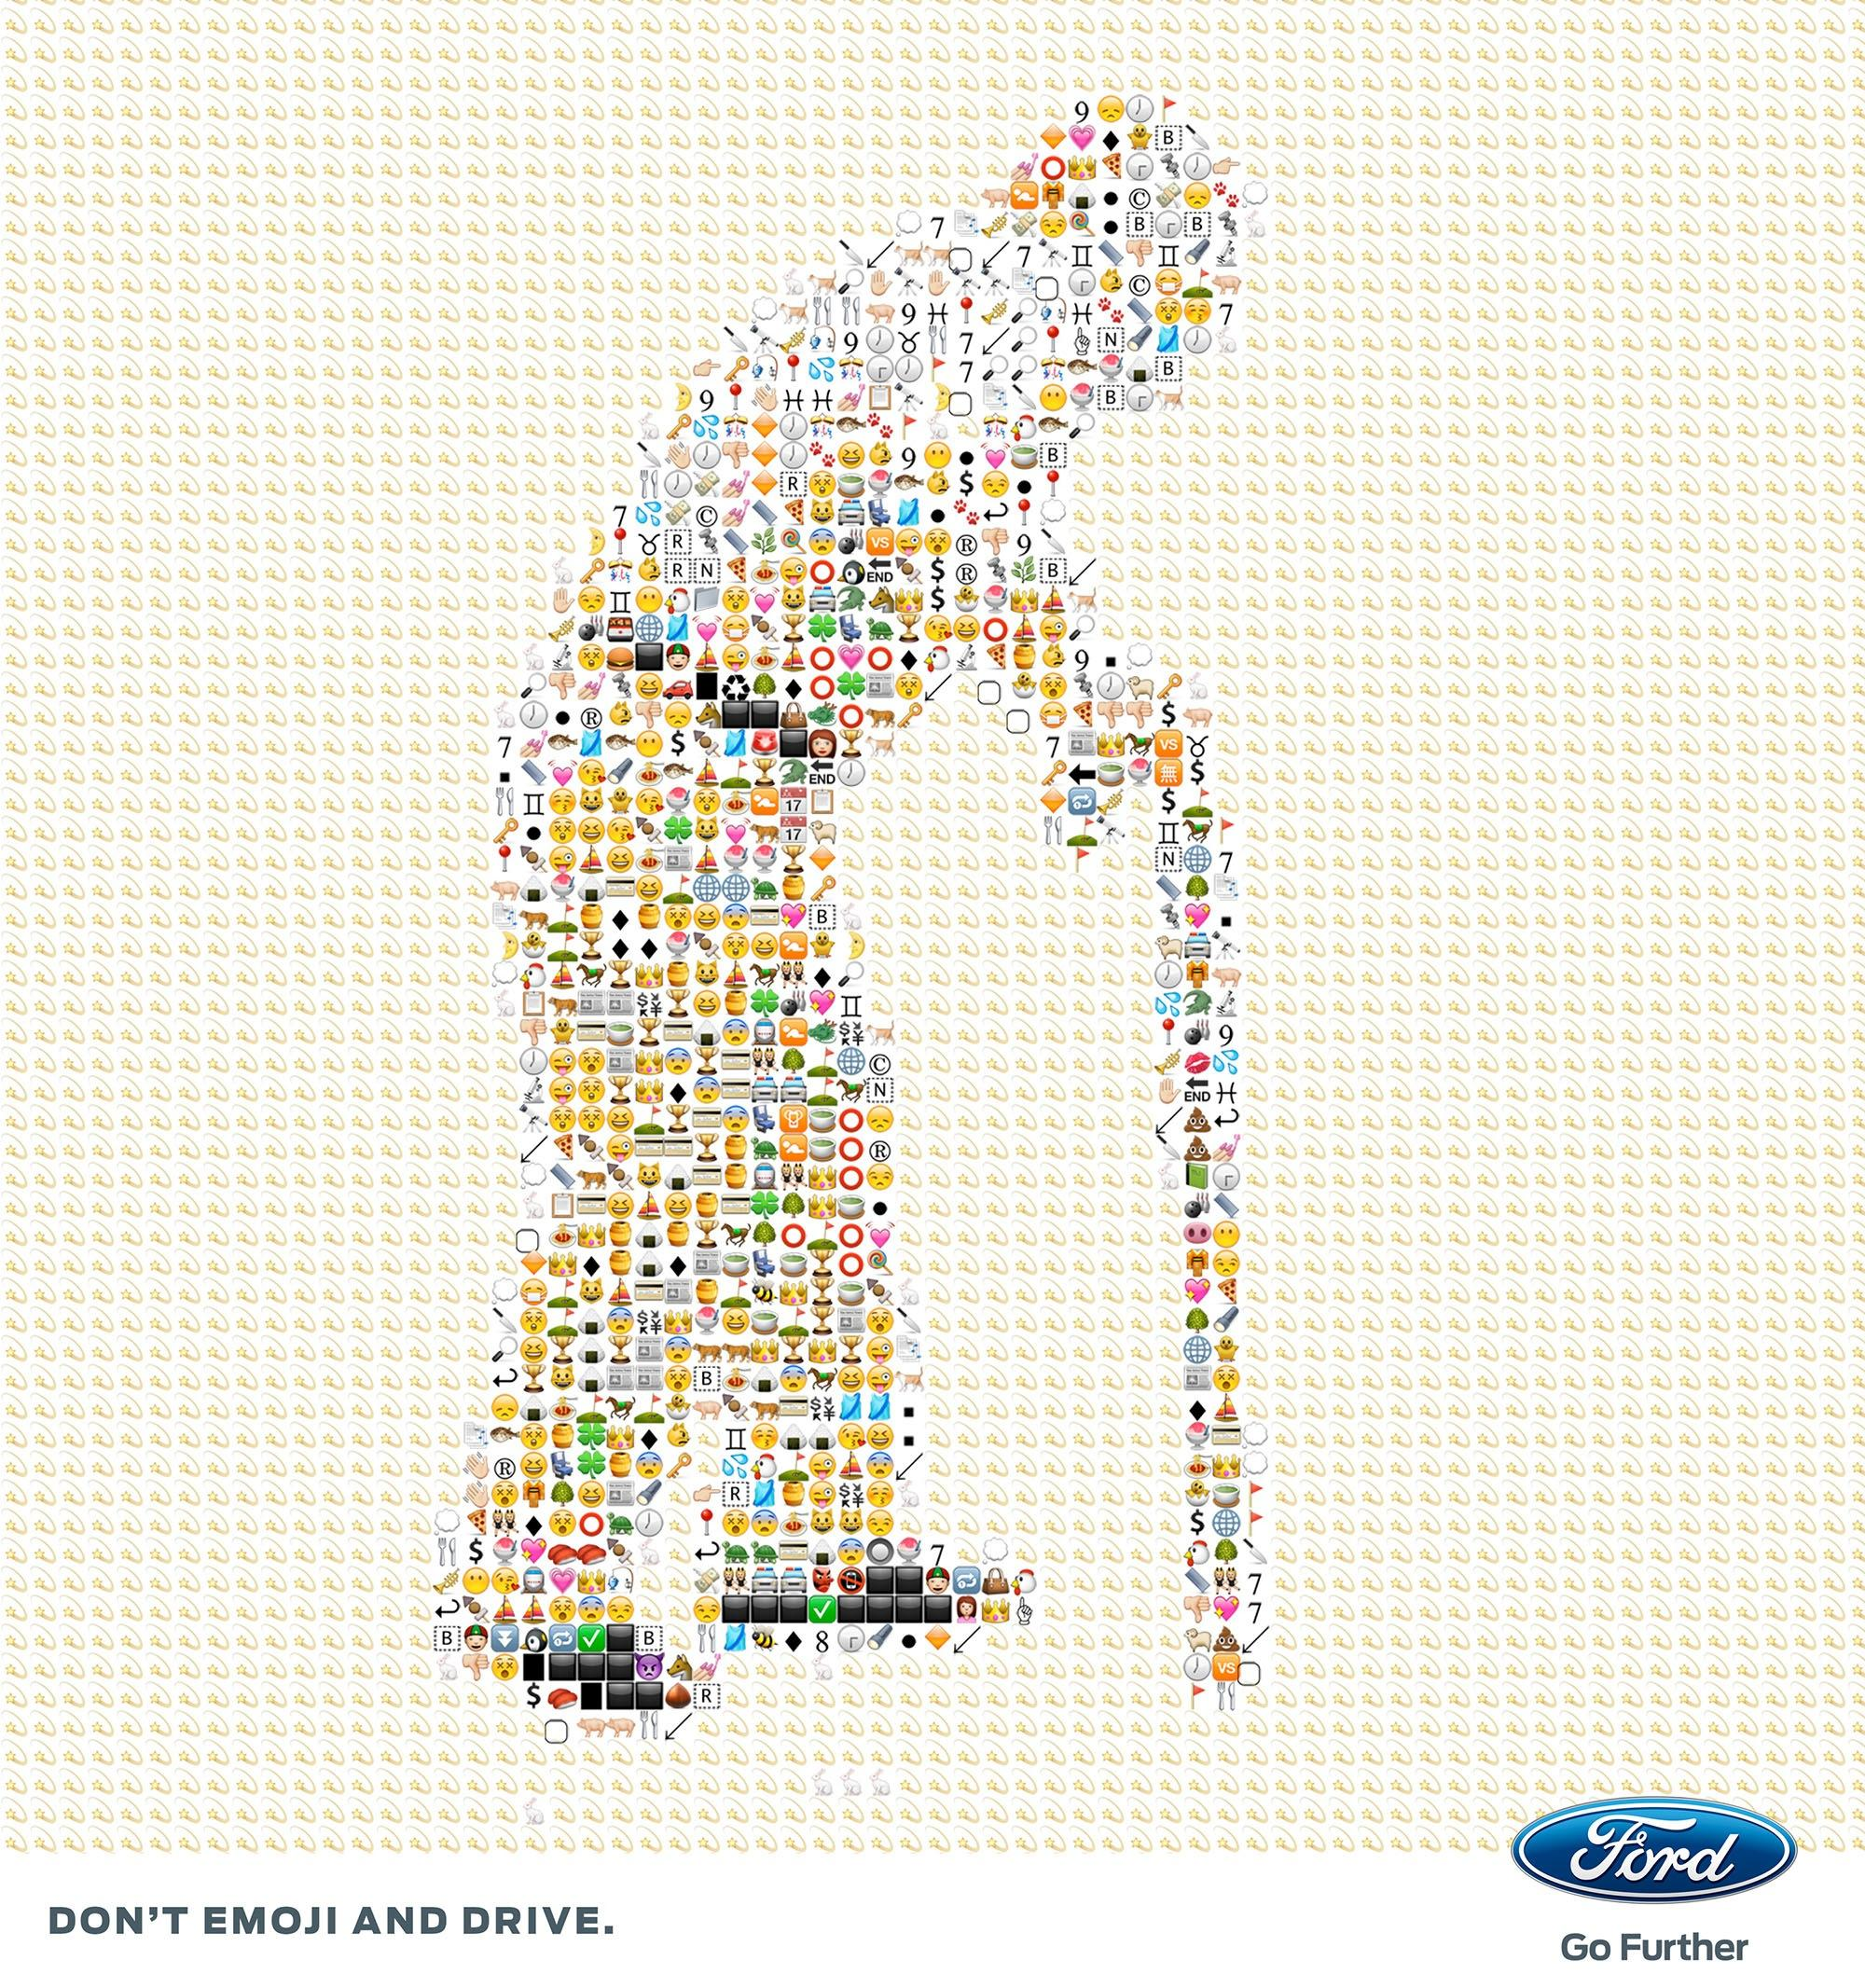 Ford Digital Ad -  #WorldEmojiDay, 2